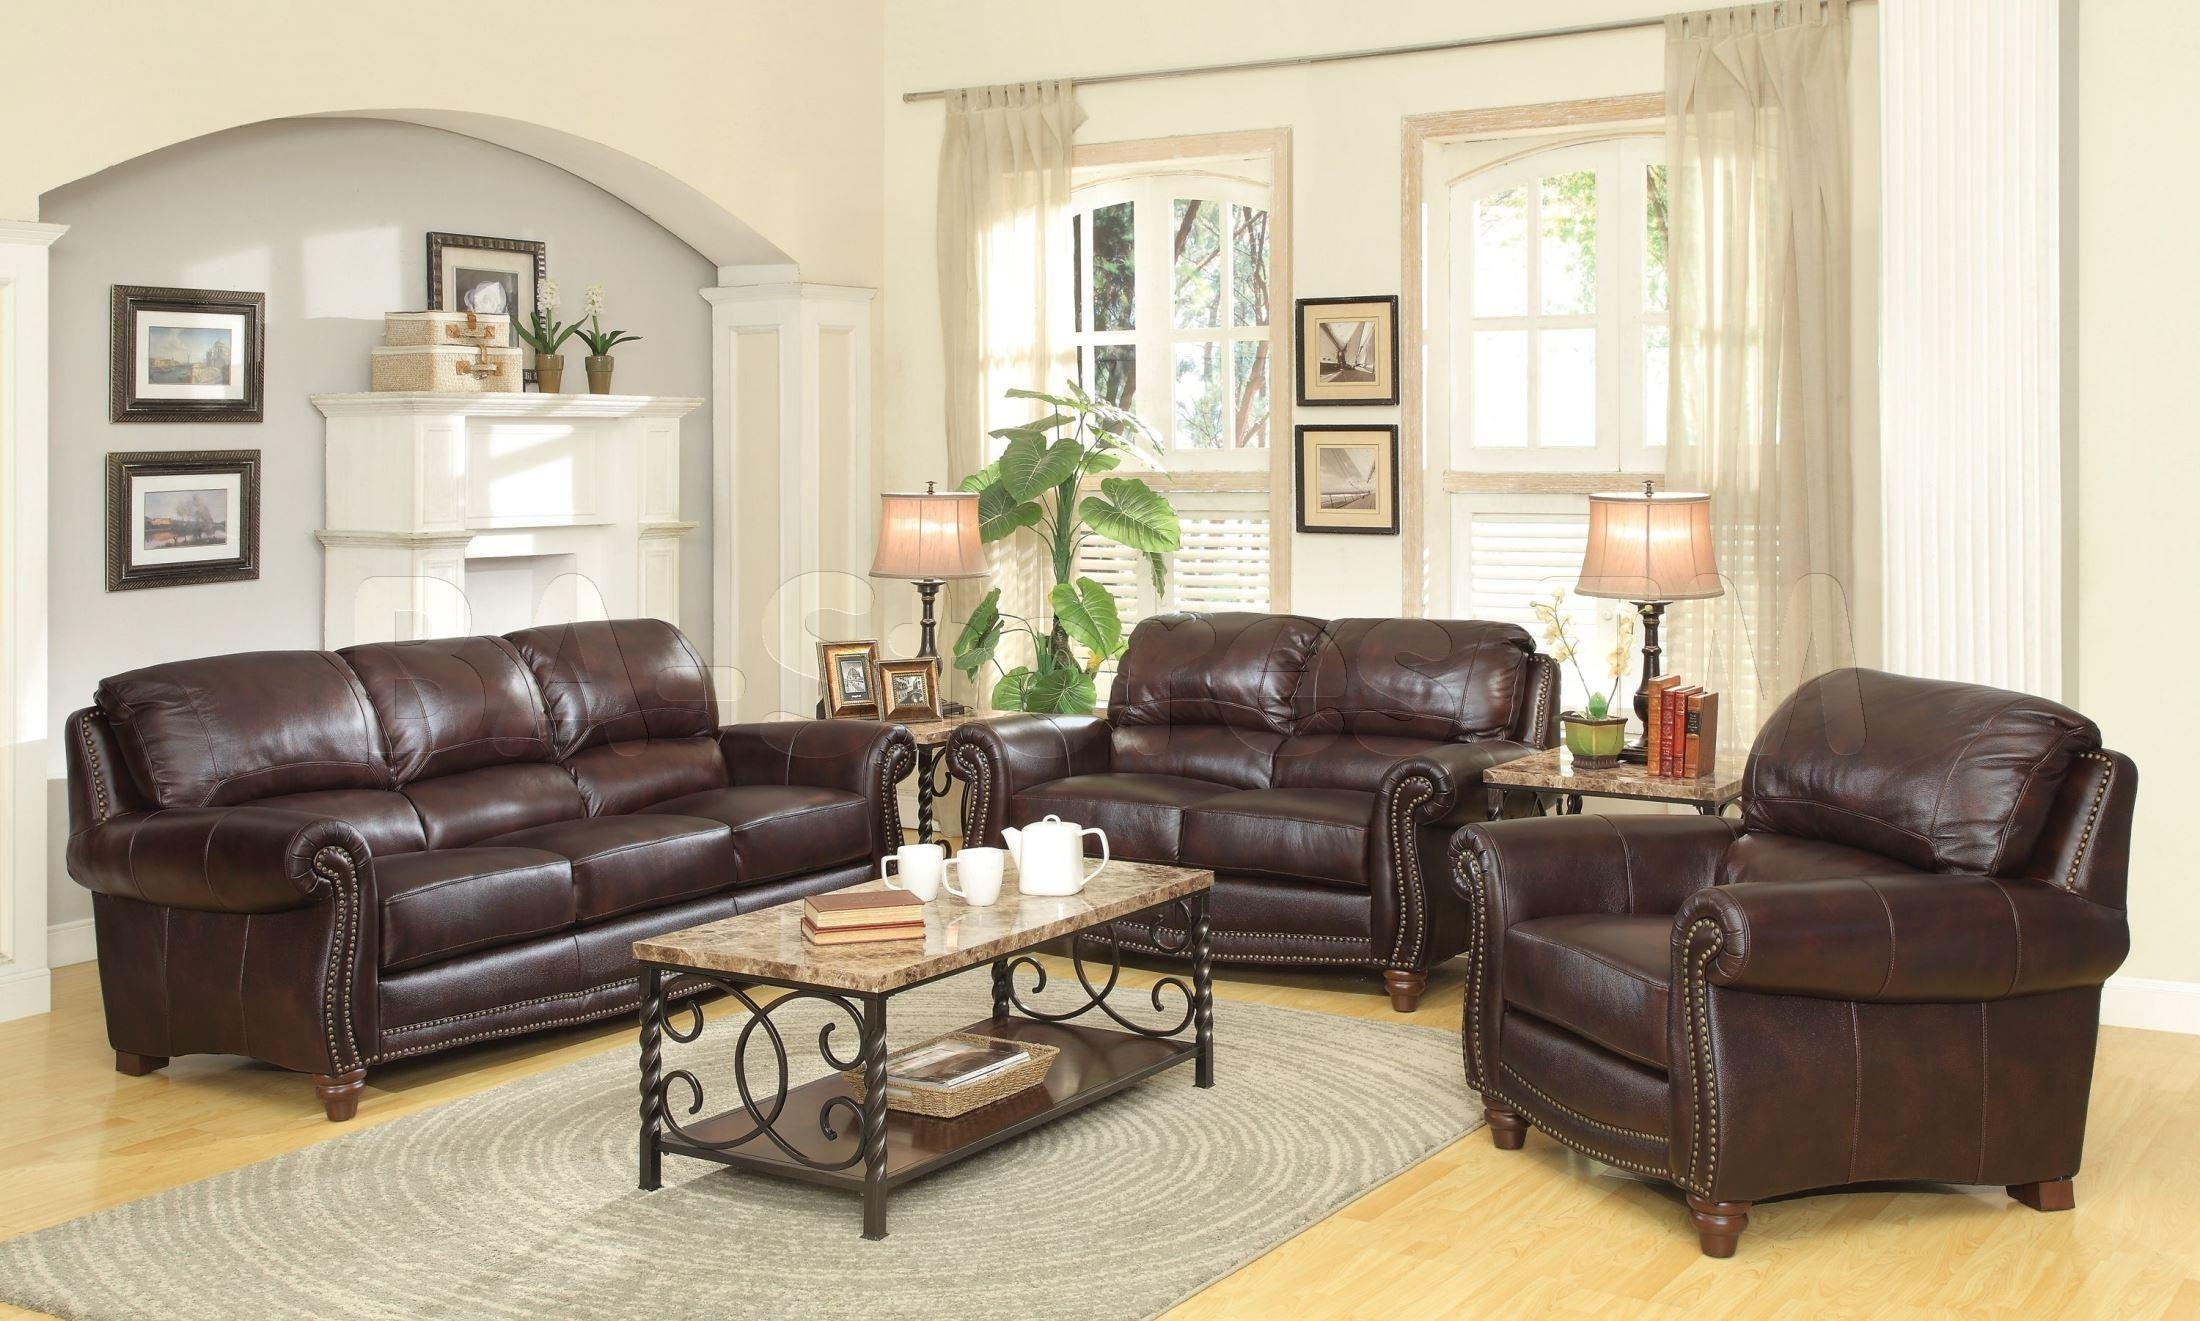 Burgundy Leather Sofa Set With Inspiration Hd Pictures 37105 Inside Burgundy Leather Sofa Sets (View 4 of 20)